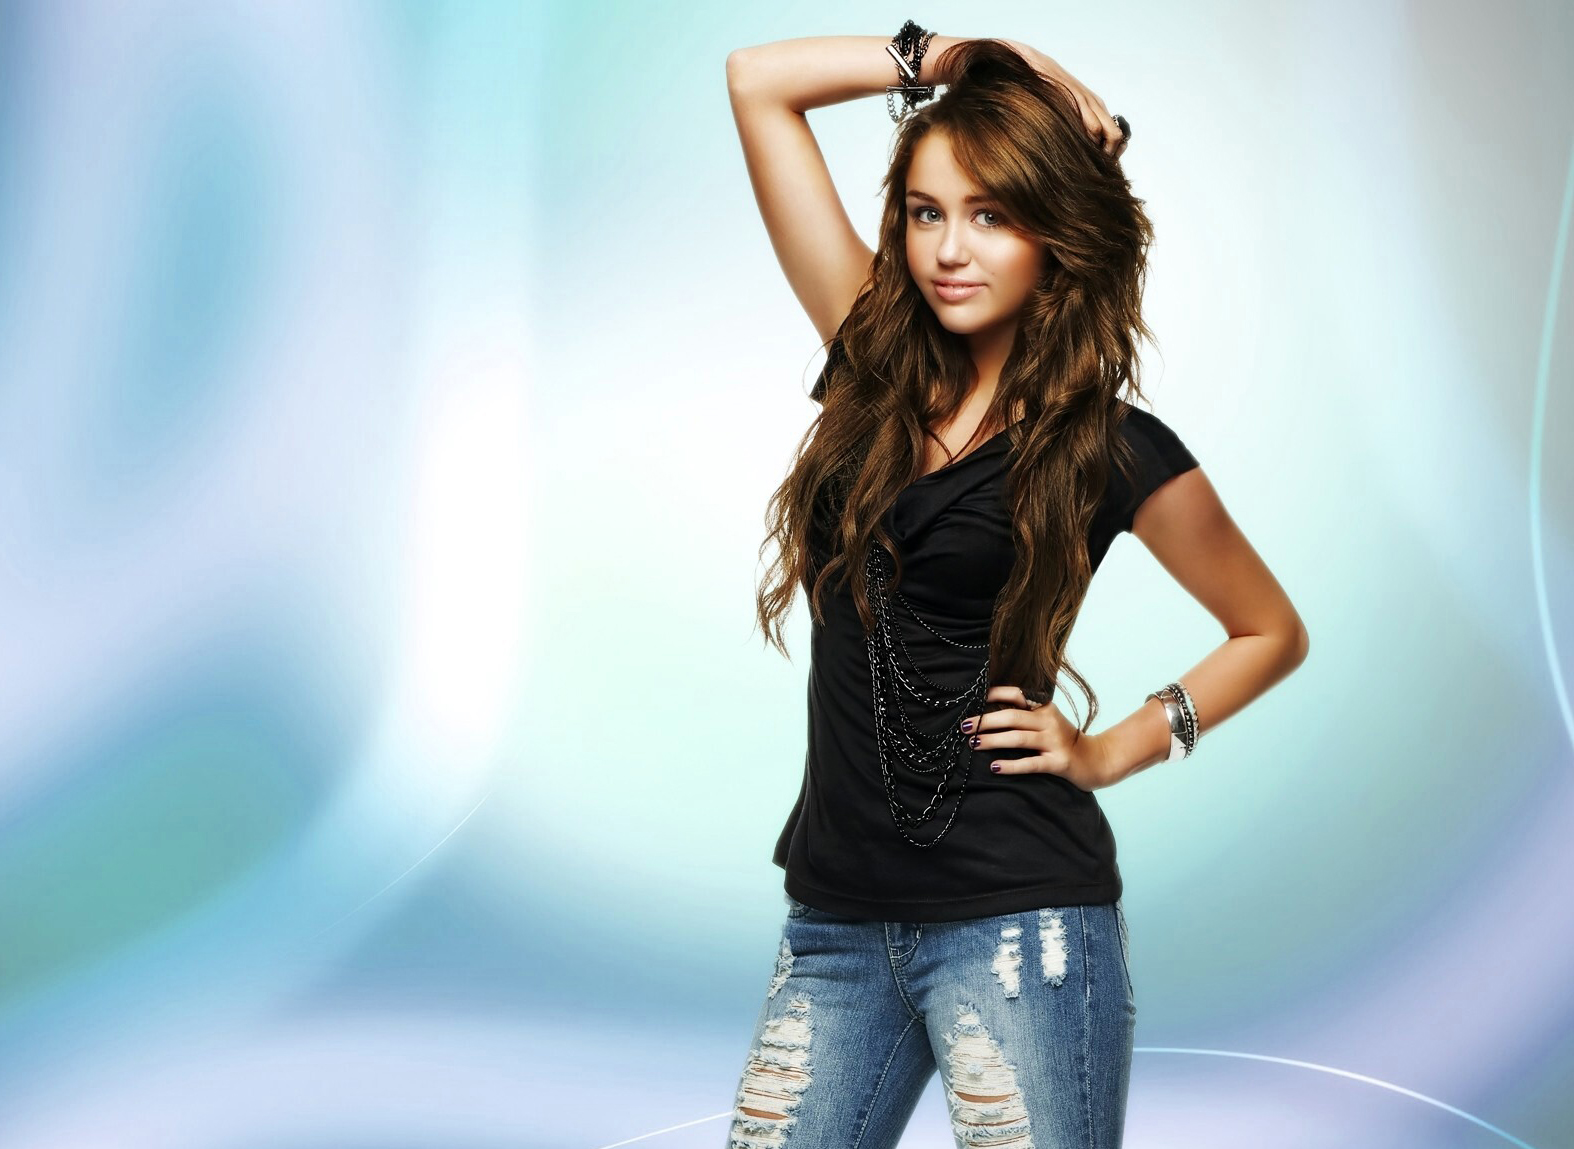 miley cyrus latest hd wallpaper 2013 | world hd wallpapers